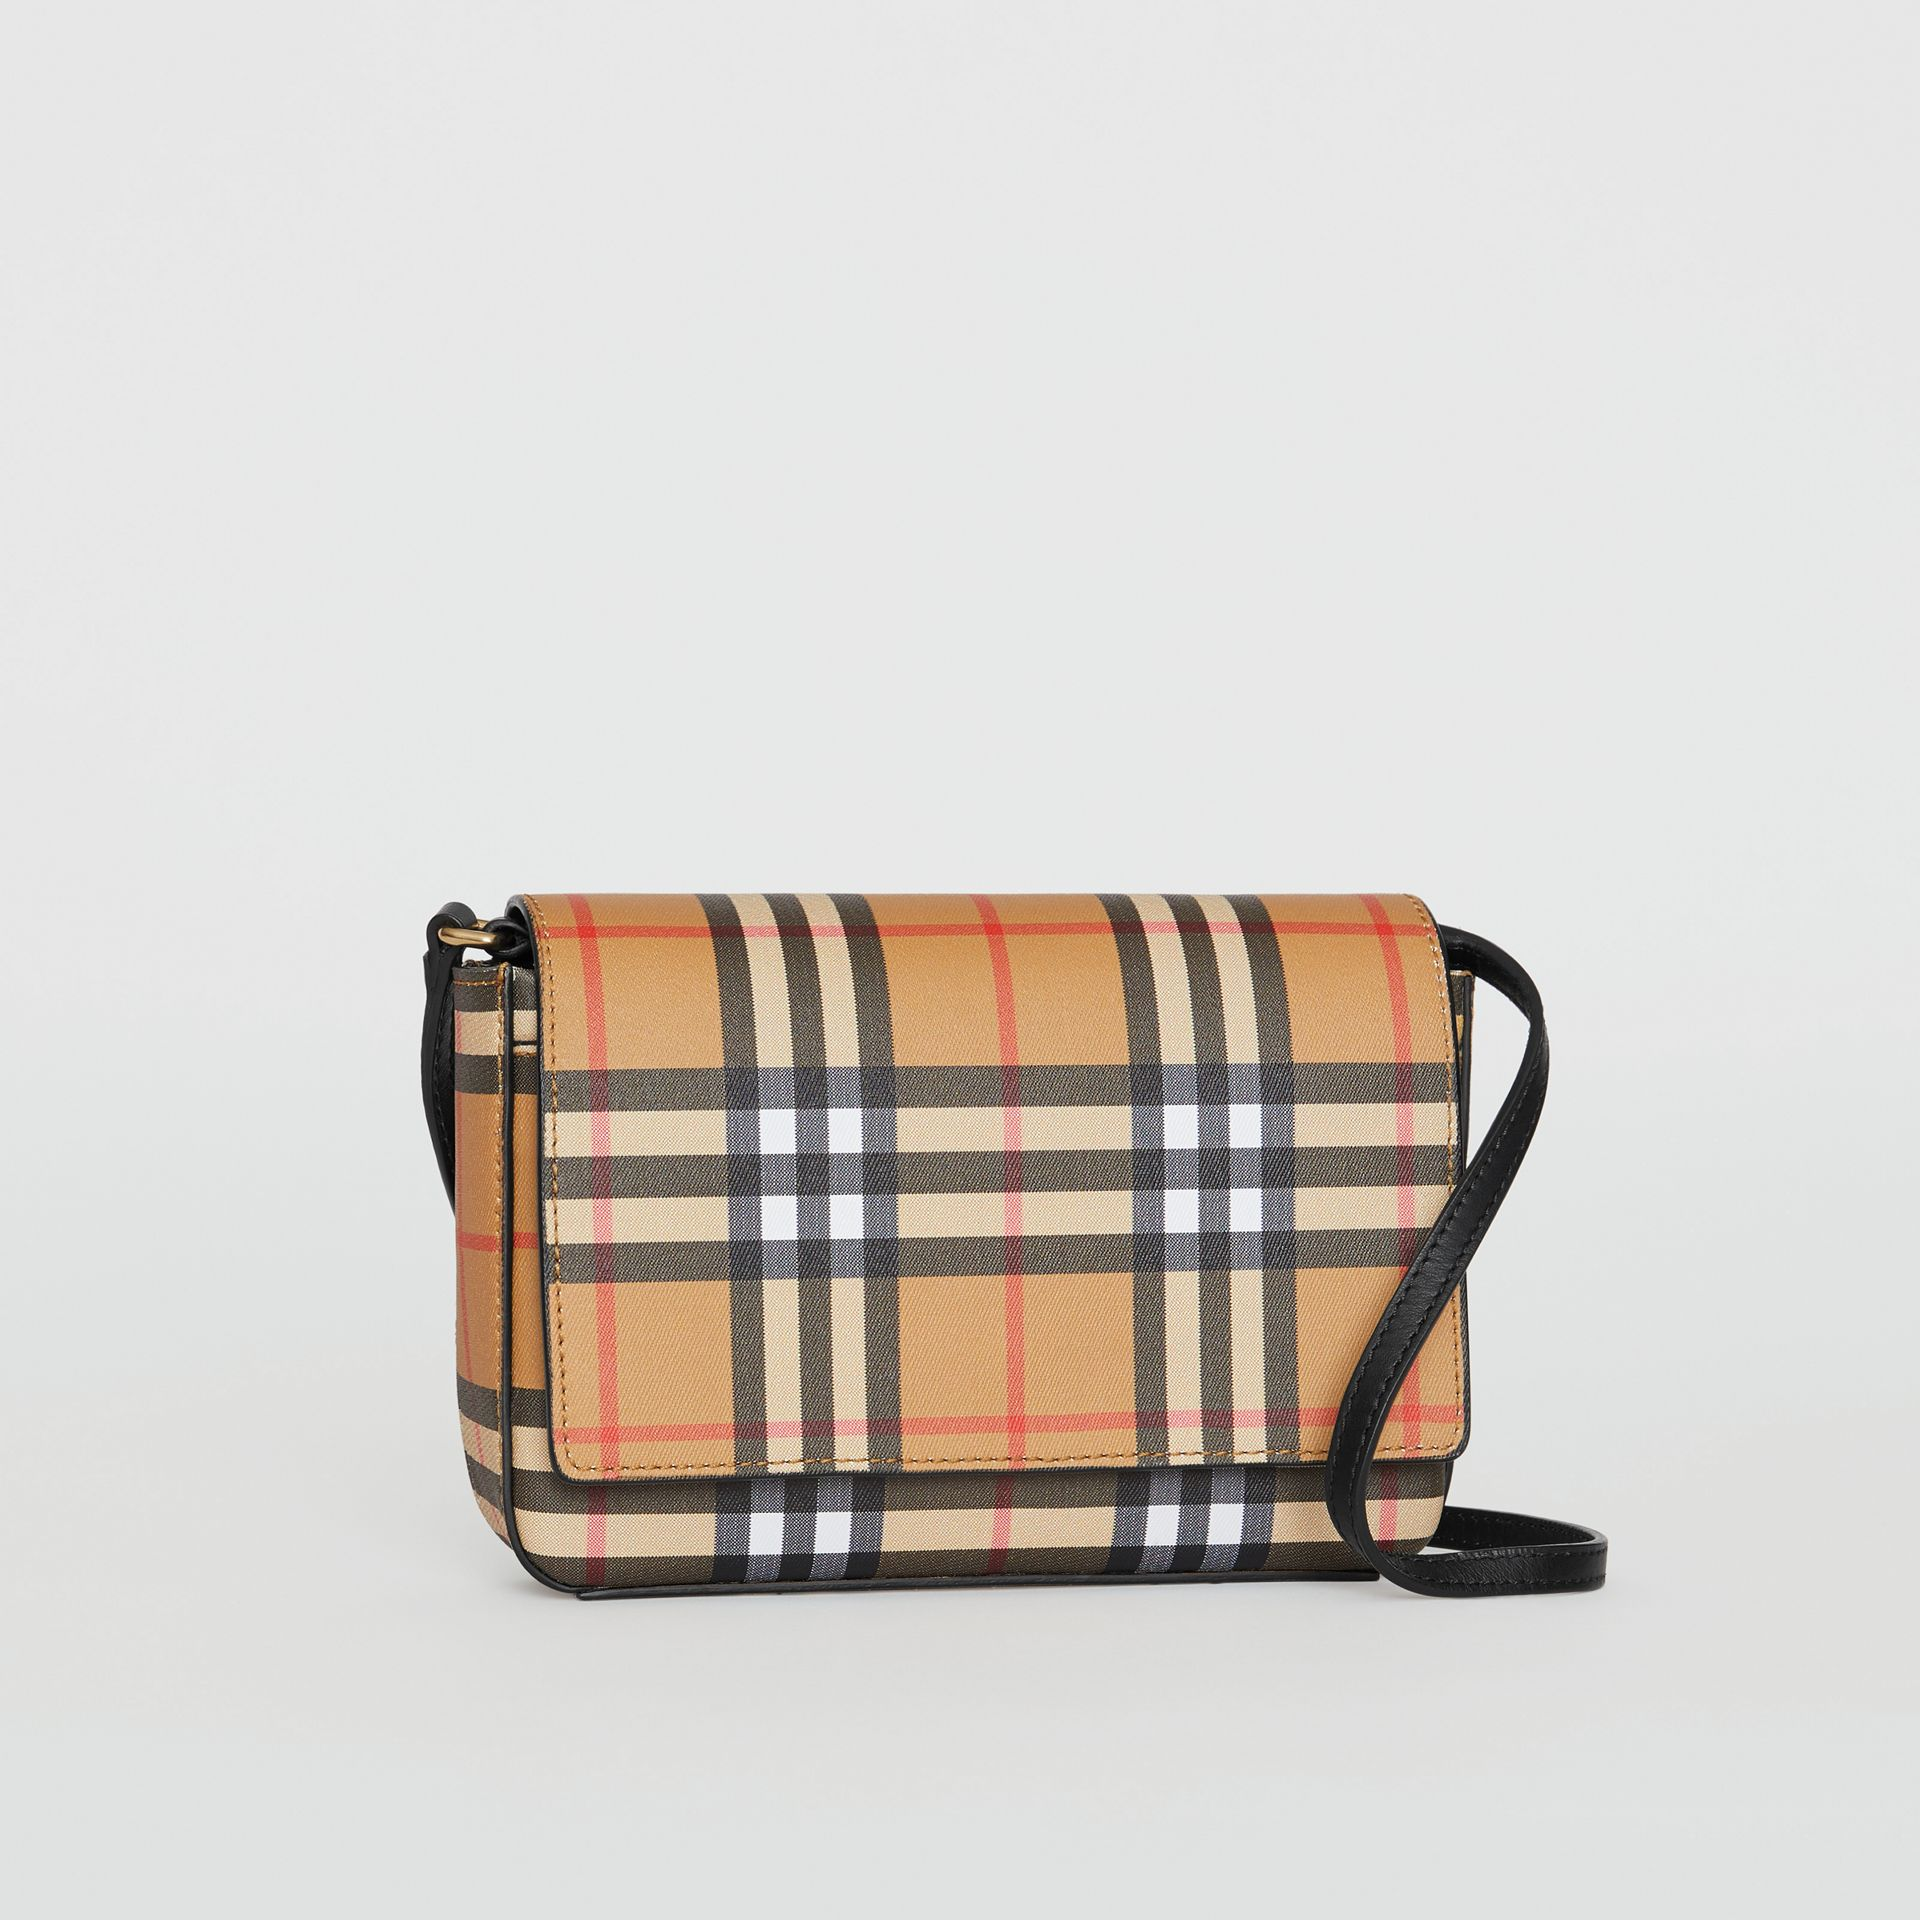 Vintage Check and Leather Wallet with Detachable Strap in Black - Women | Burberry Canada - gallery image 6